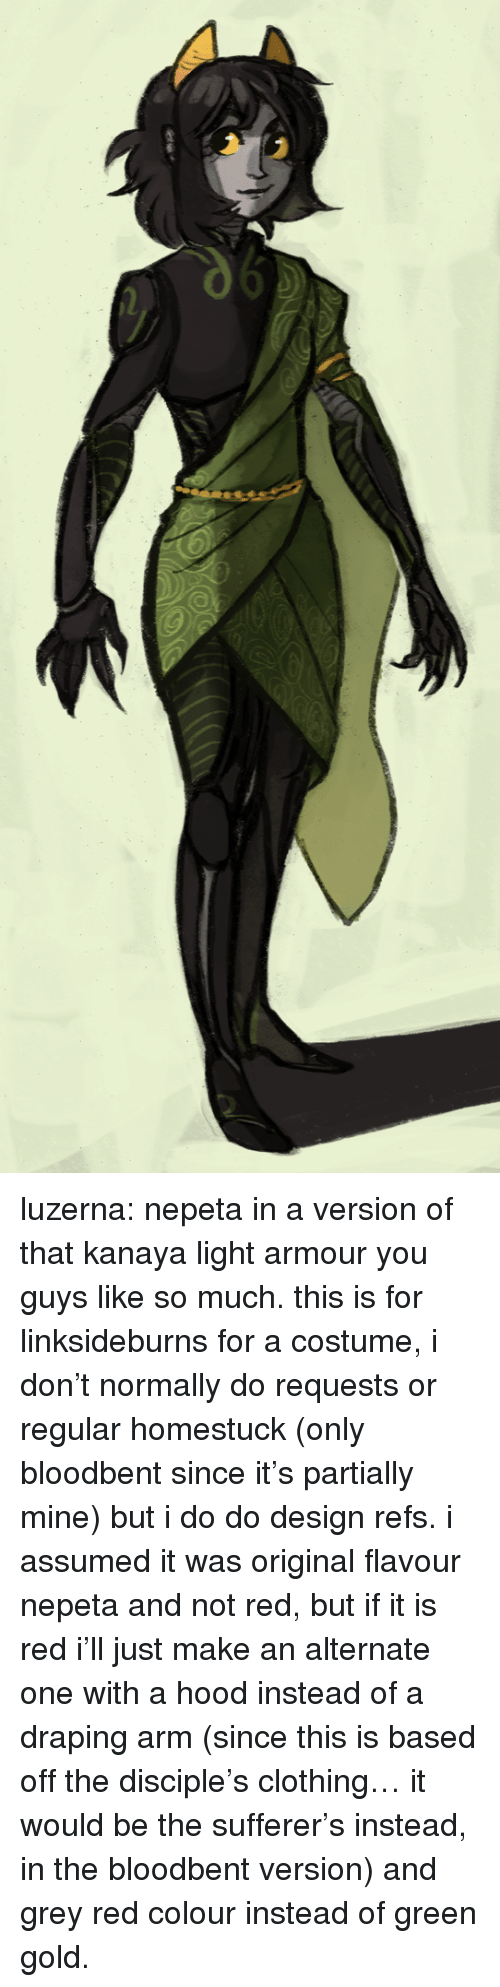 A Hood: luzerna:  nepeta in a version of that kanaya light armour you guys like so much. this is for linksideburns for a costume, i don't normally do requests or regular homestuck (only bloodbent since it's partially mine) but i do do design refs. i assumed it was original flavour nepeta and not red, but if it is red i'll just make an alternate one with a hood instead of a draping arm (since this is based off the disciple's clothing… it would be the sufferer's instead, in the bloodbent version) and grey  red colour instead of green  gold.